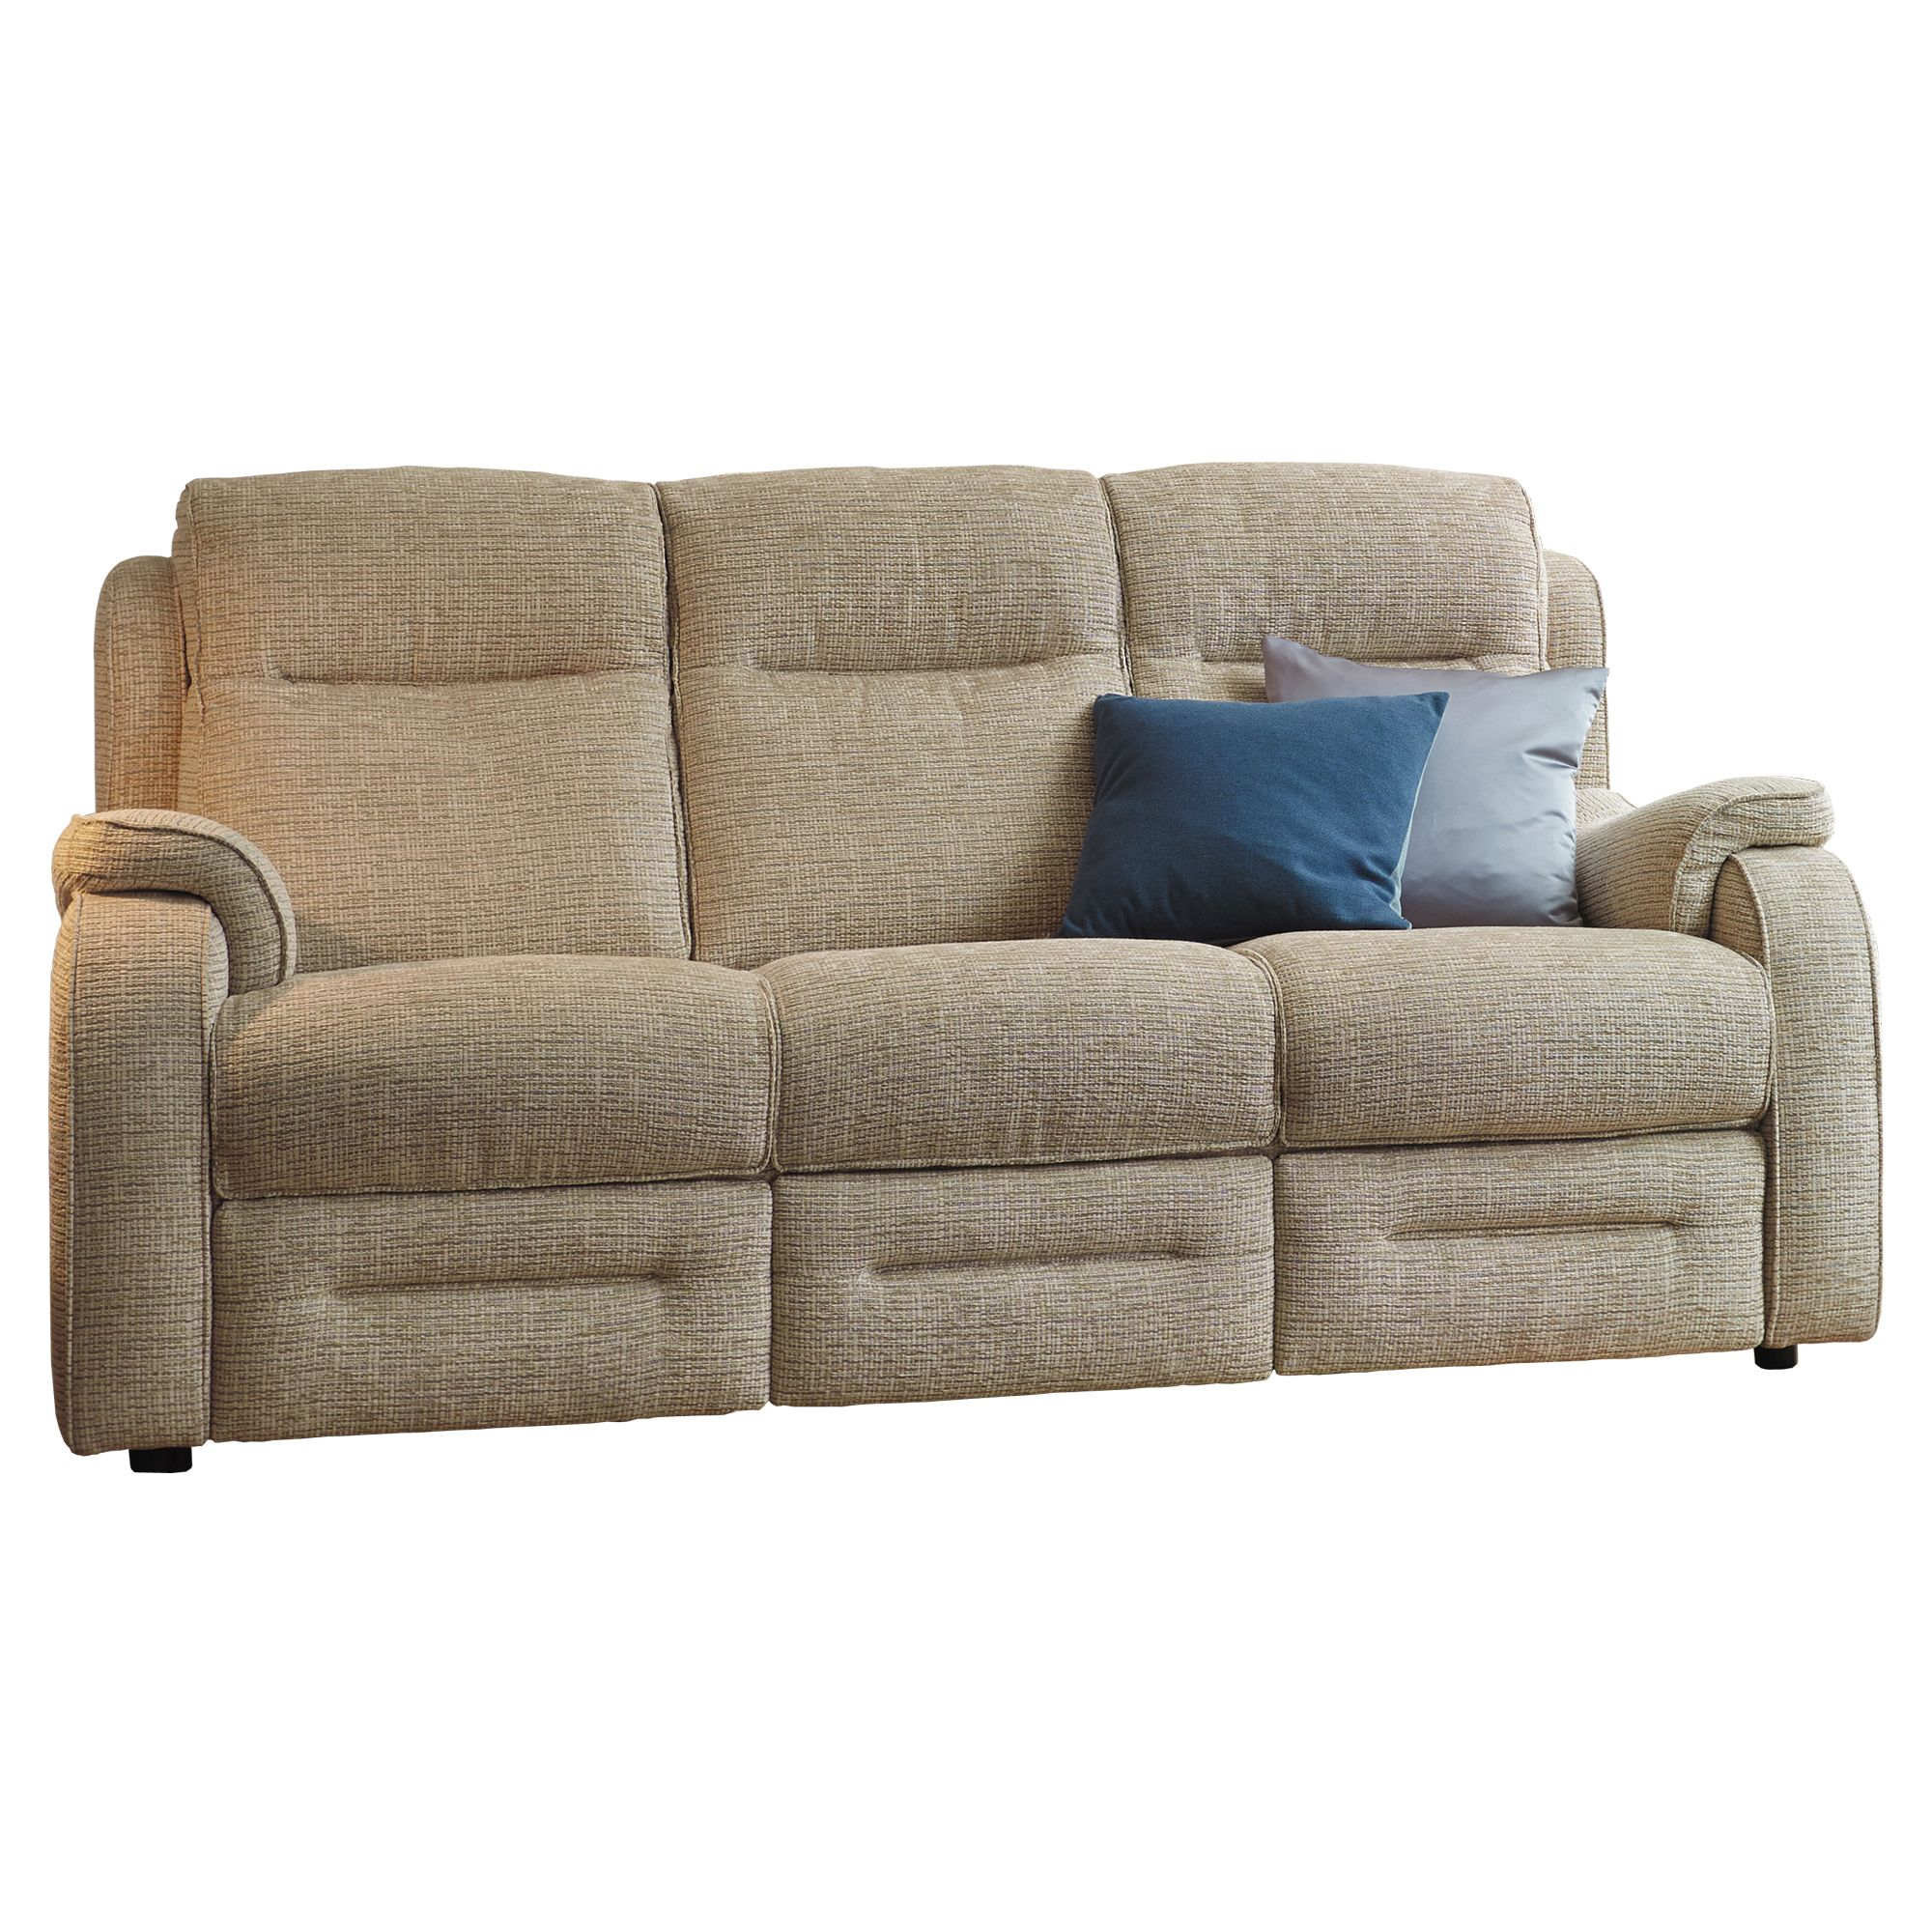 Remarkable Parker Knoll Boston 3 Seater Manual Reclining Sofa Fabric A Gmtry Best Dining Table And Chair Ideas Images Gmtryco